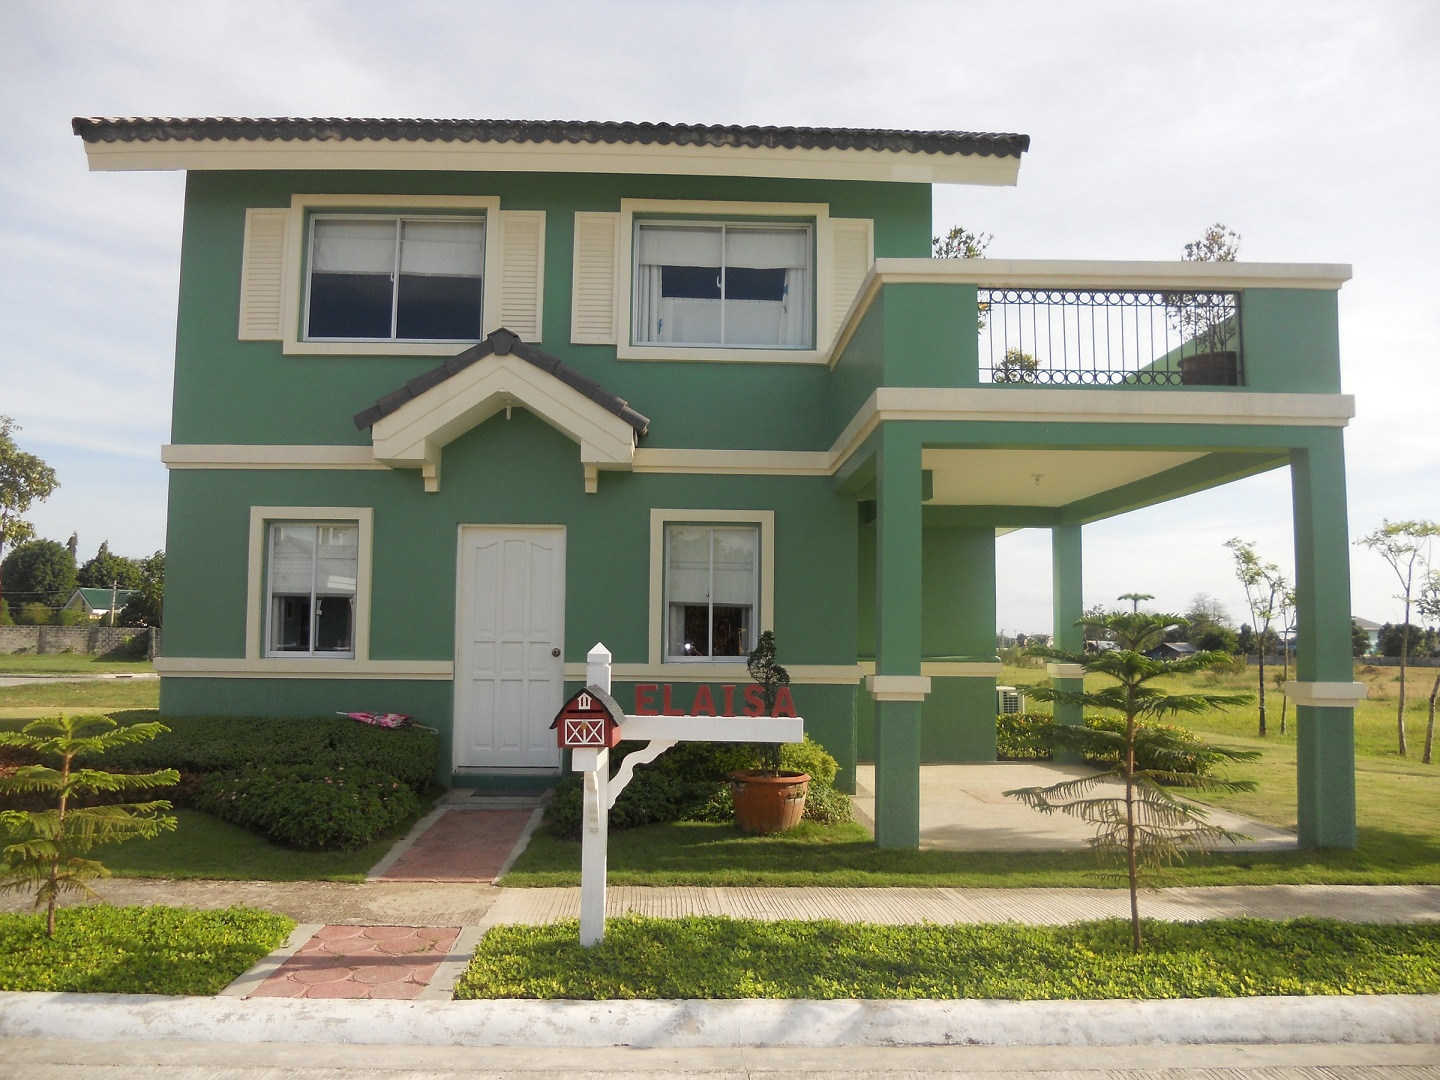 Elaisa or sapphire model house of savannah glades iloilo for Subdivision home designs